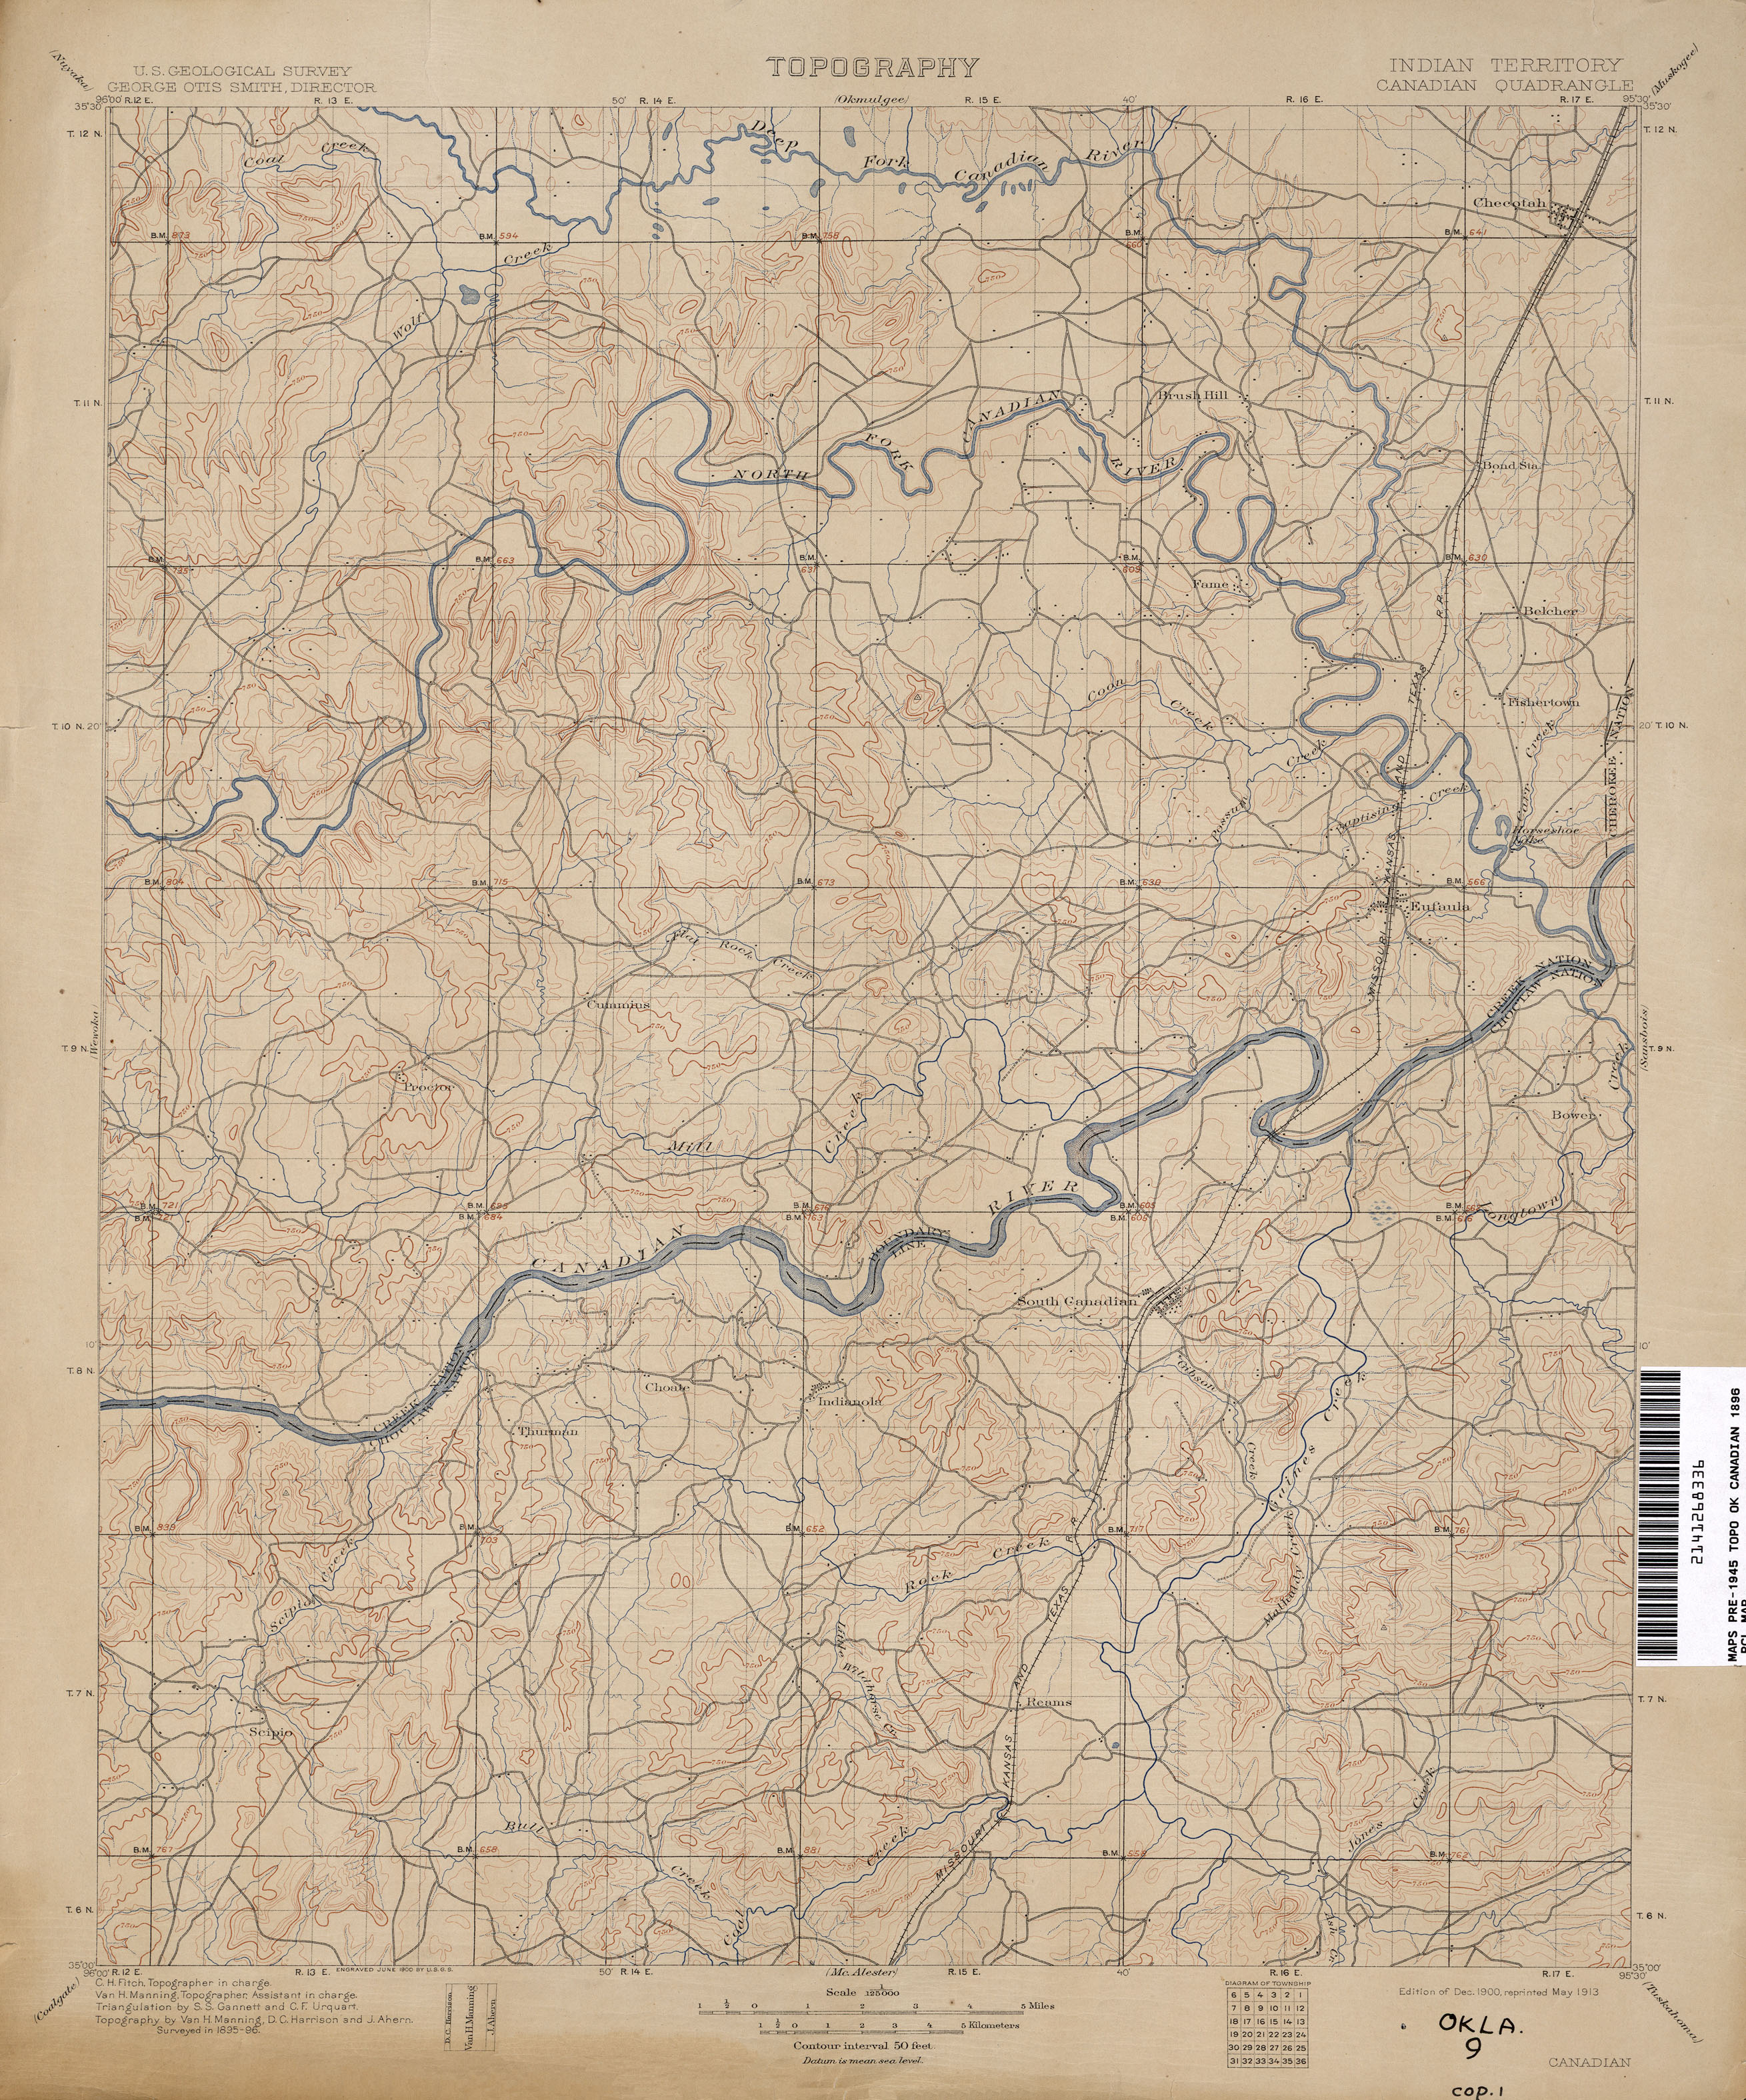 Oklahoma Historical Topographic Maps - Perry-Castañeda Map ...